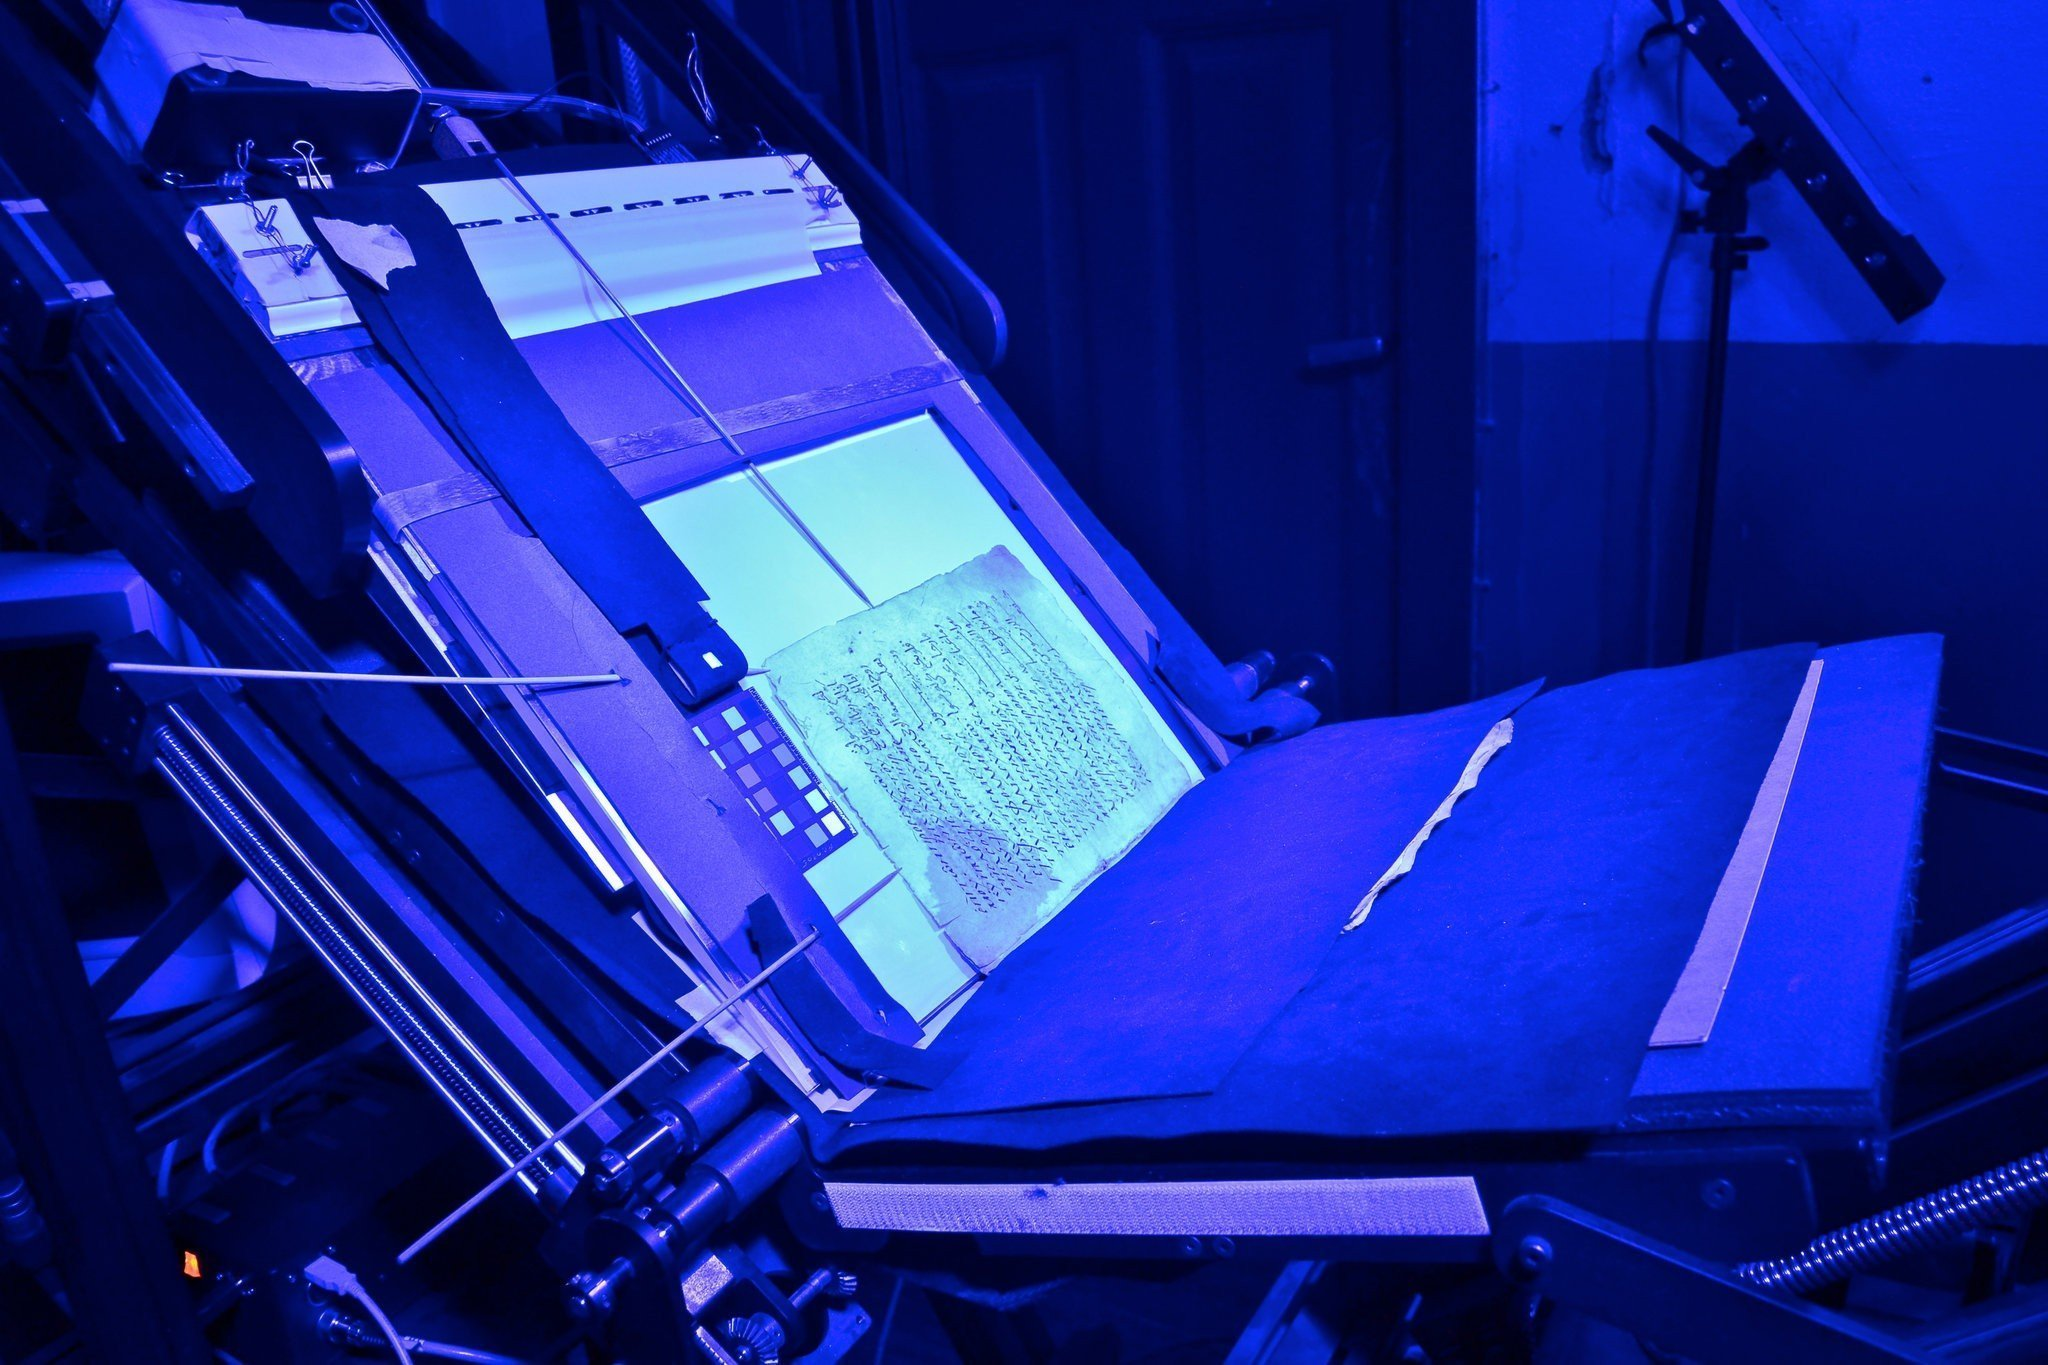 Spectral imaging of an ancient manuscript leaf at St. Catherine's.CreditMark Schrope